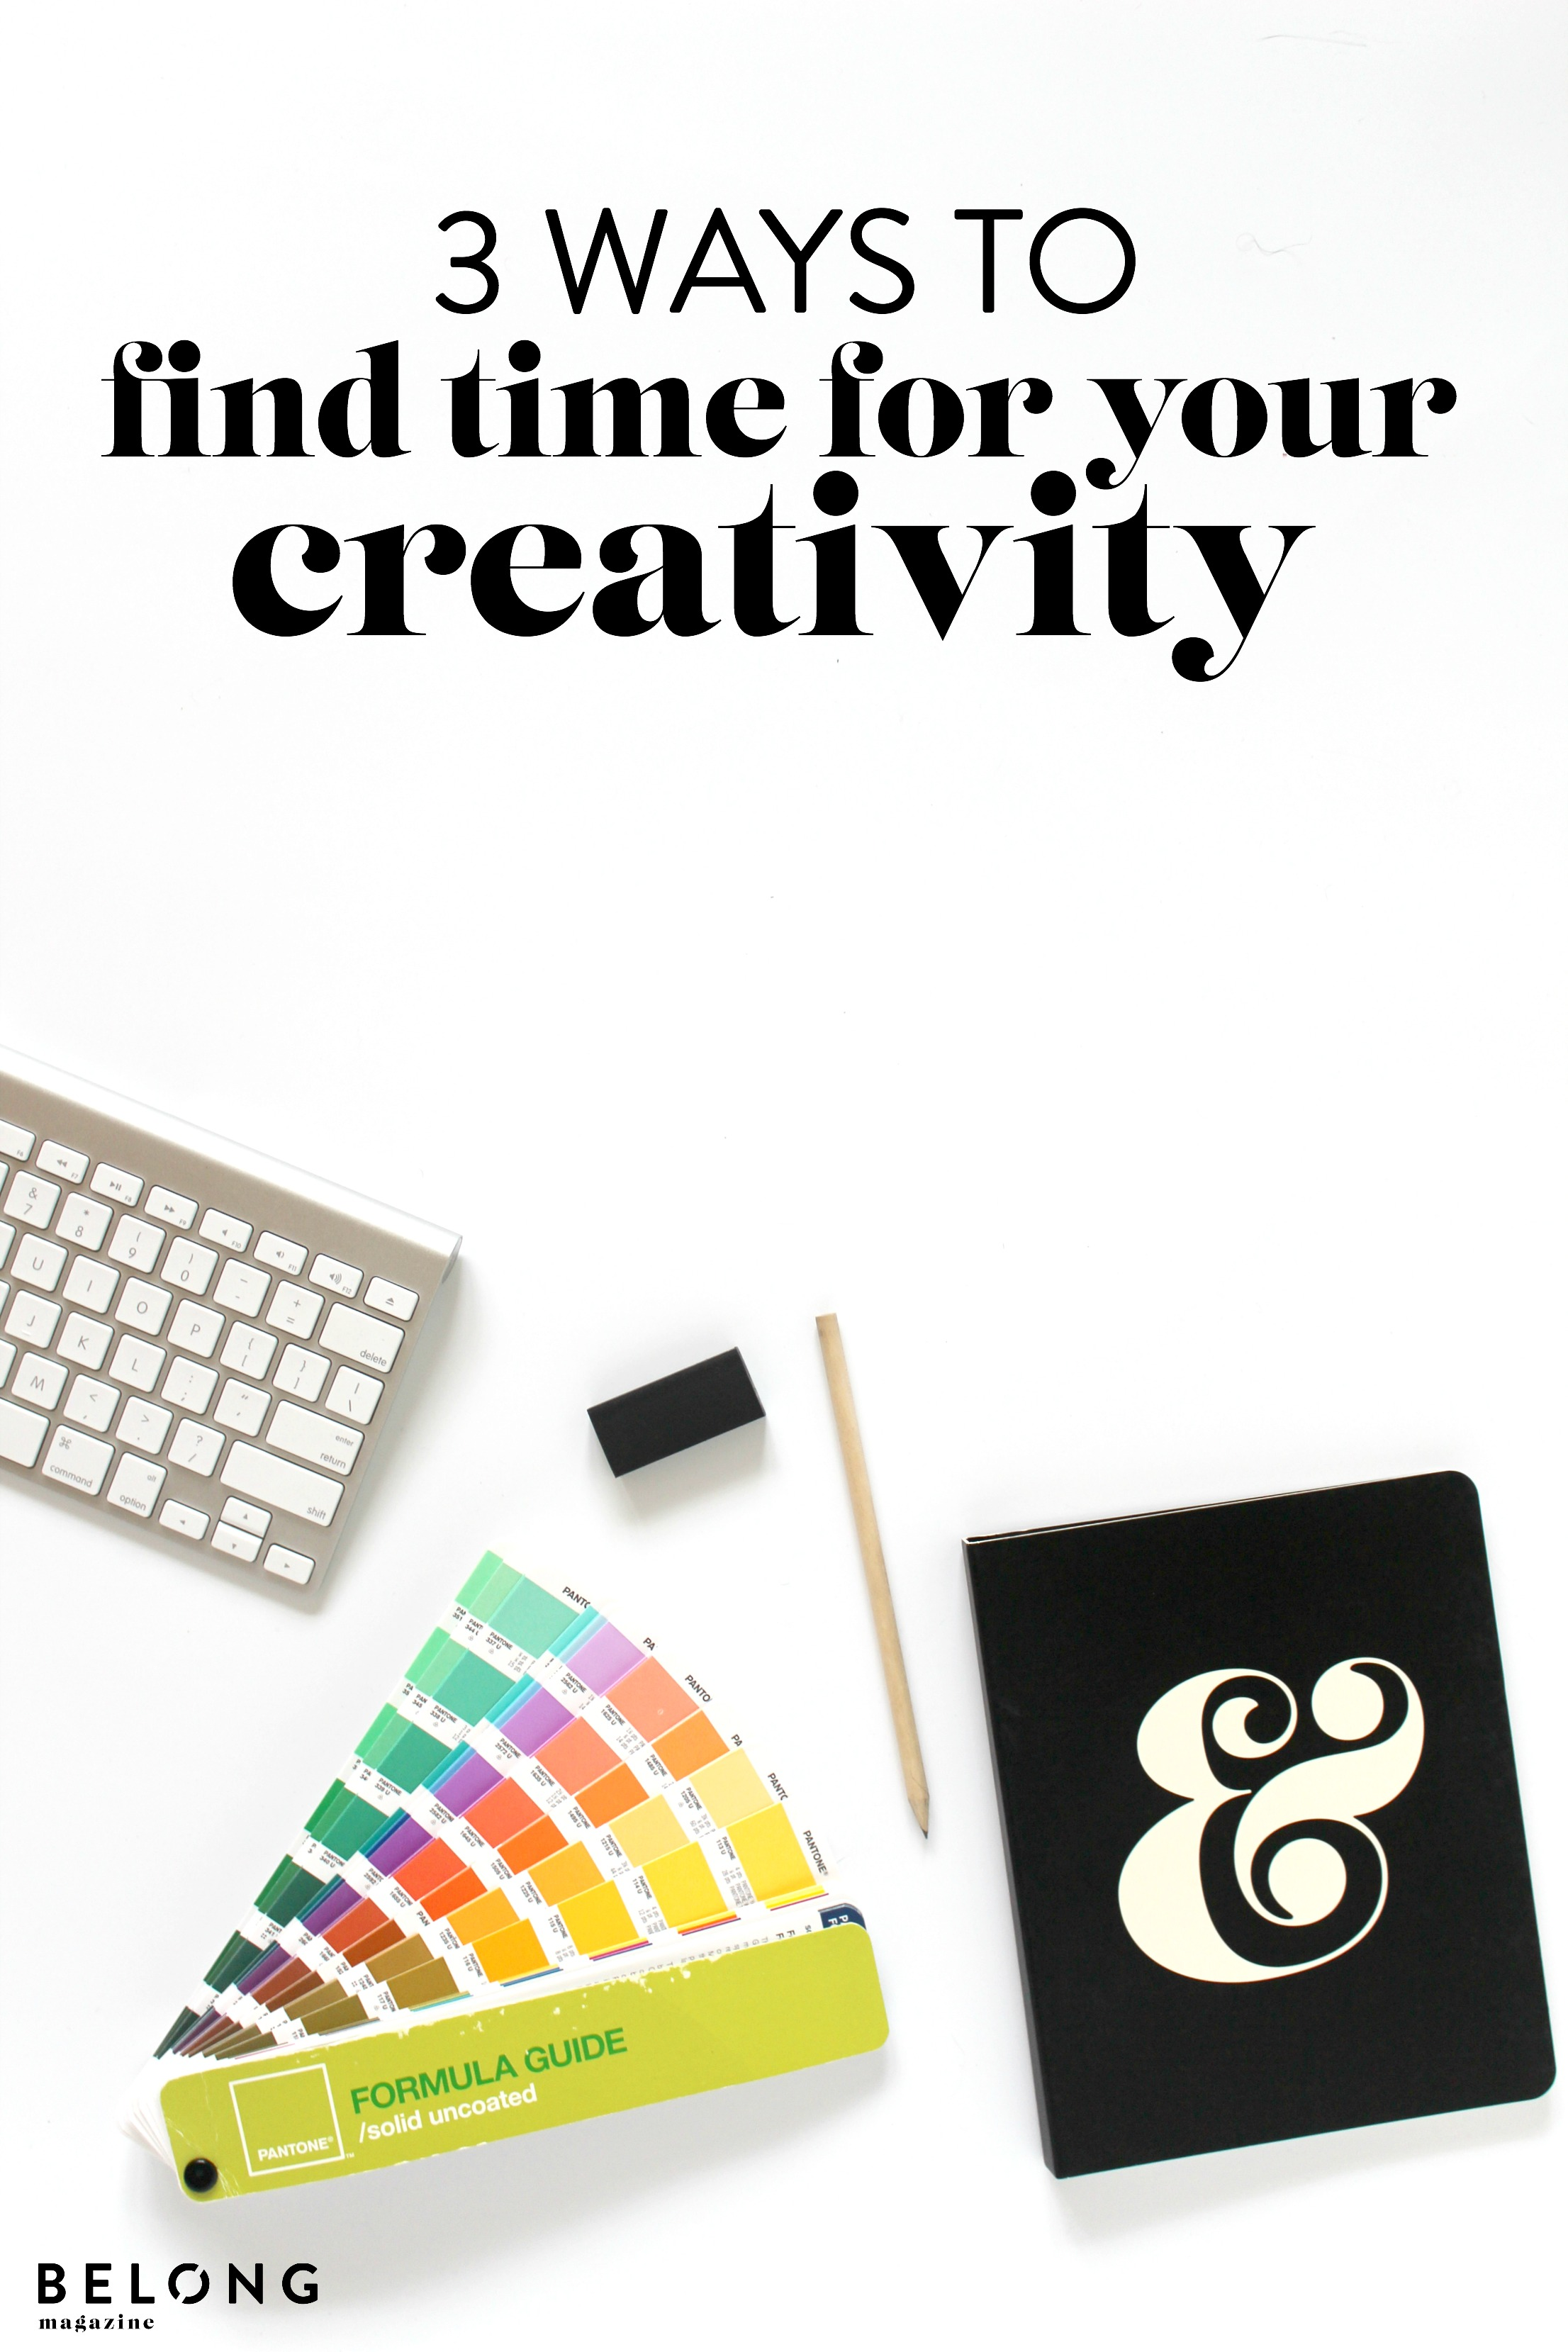 3 ways to find time for your creativity and how this benefits your business - belong magazine blog